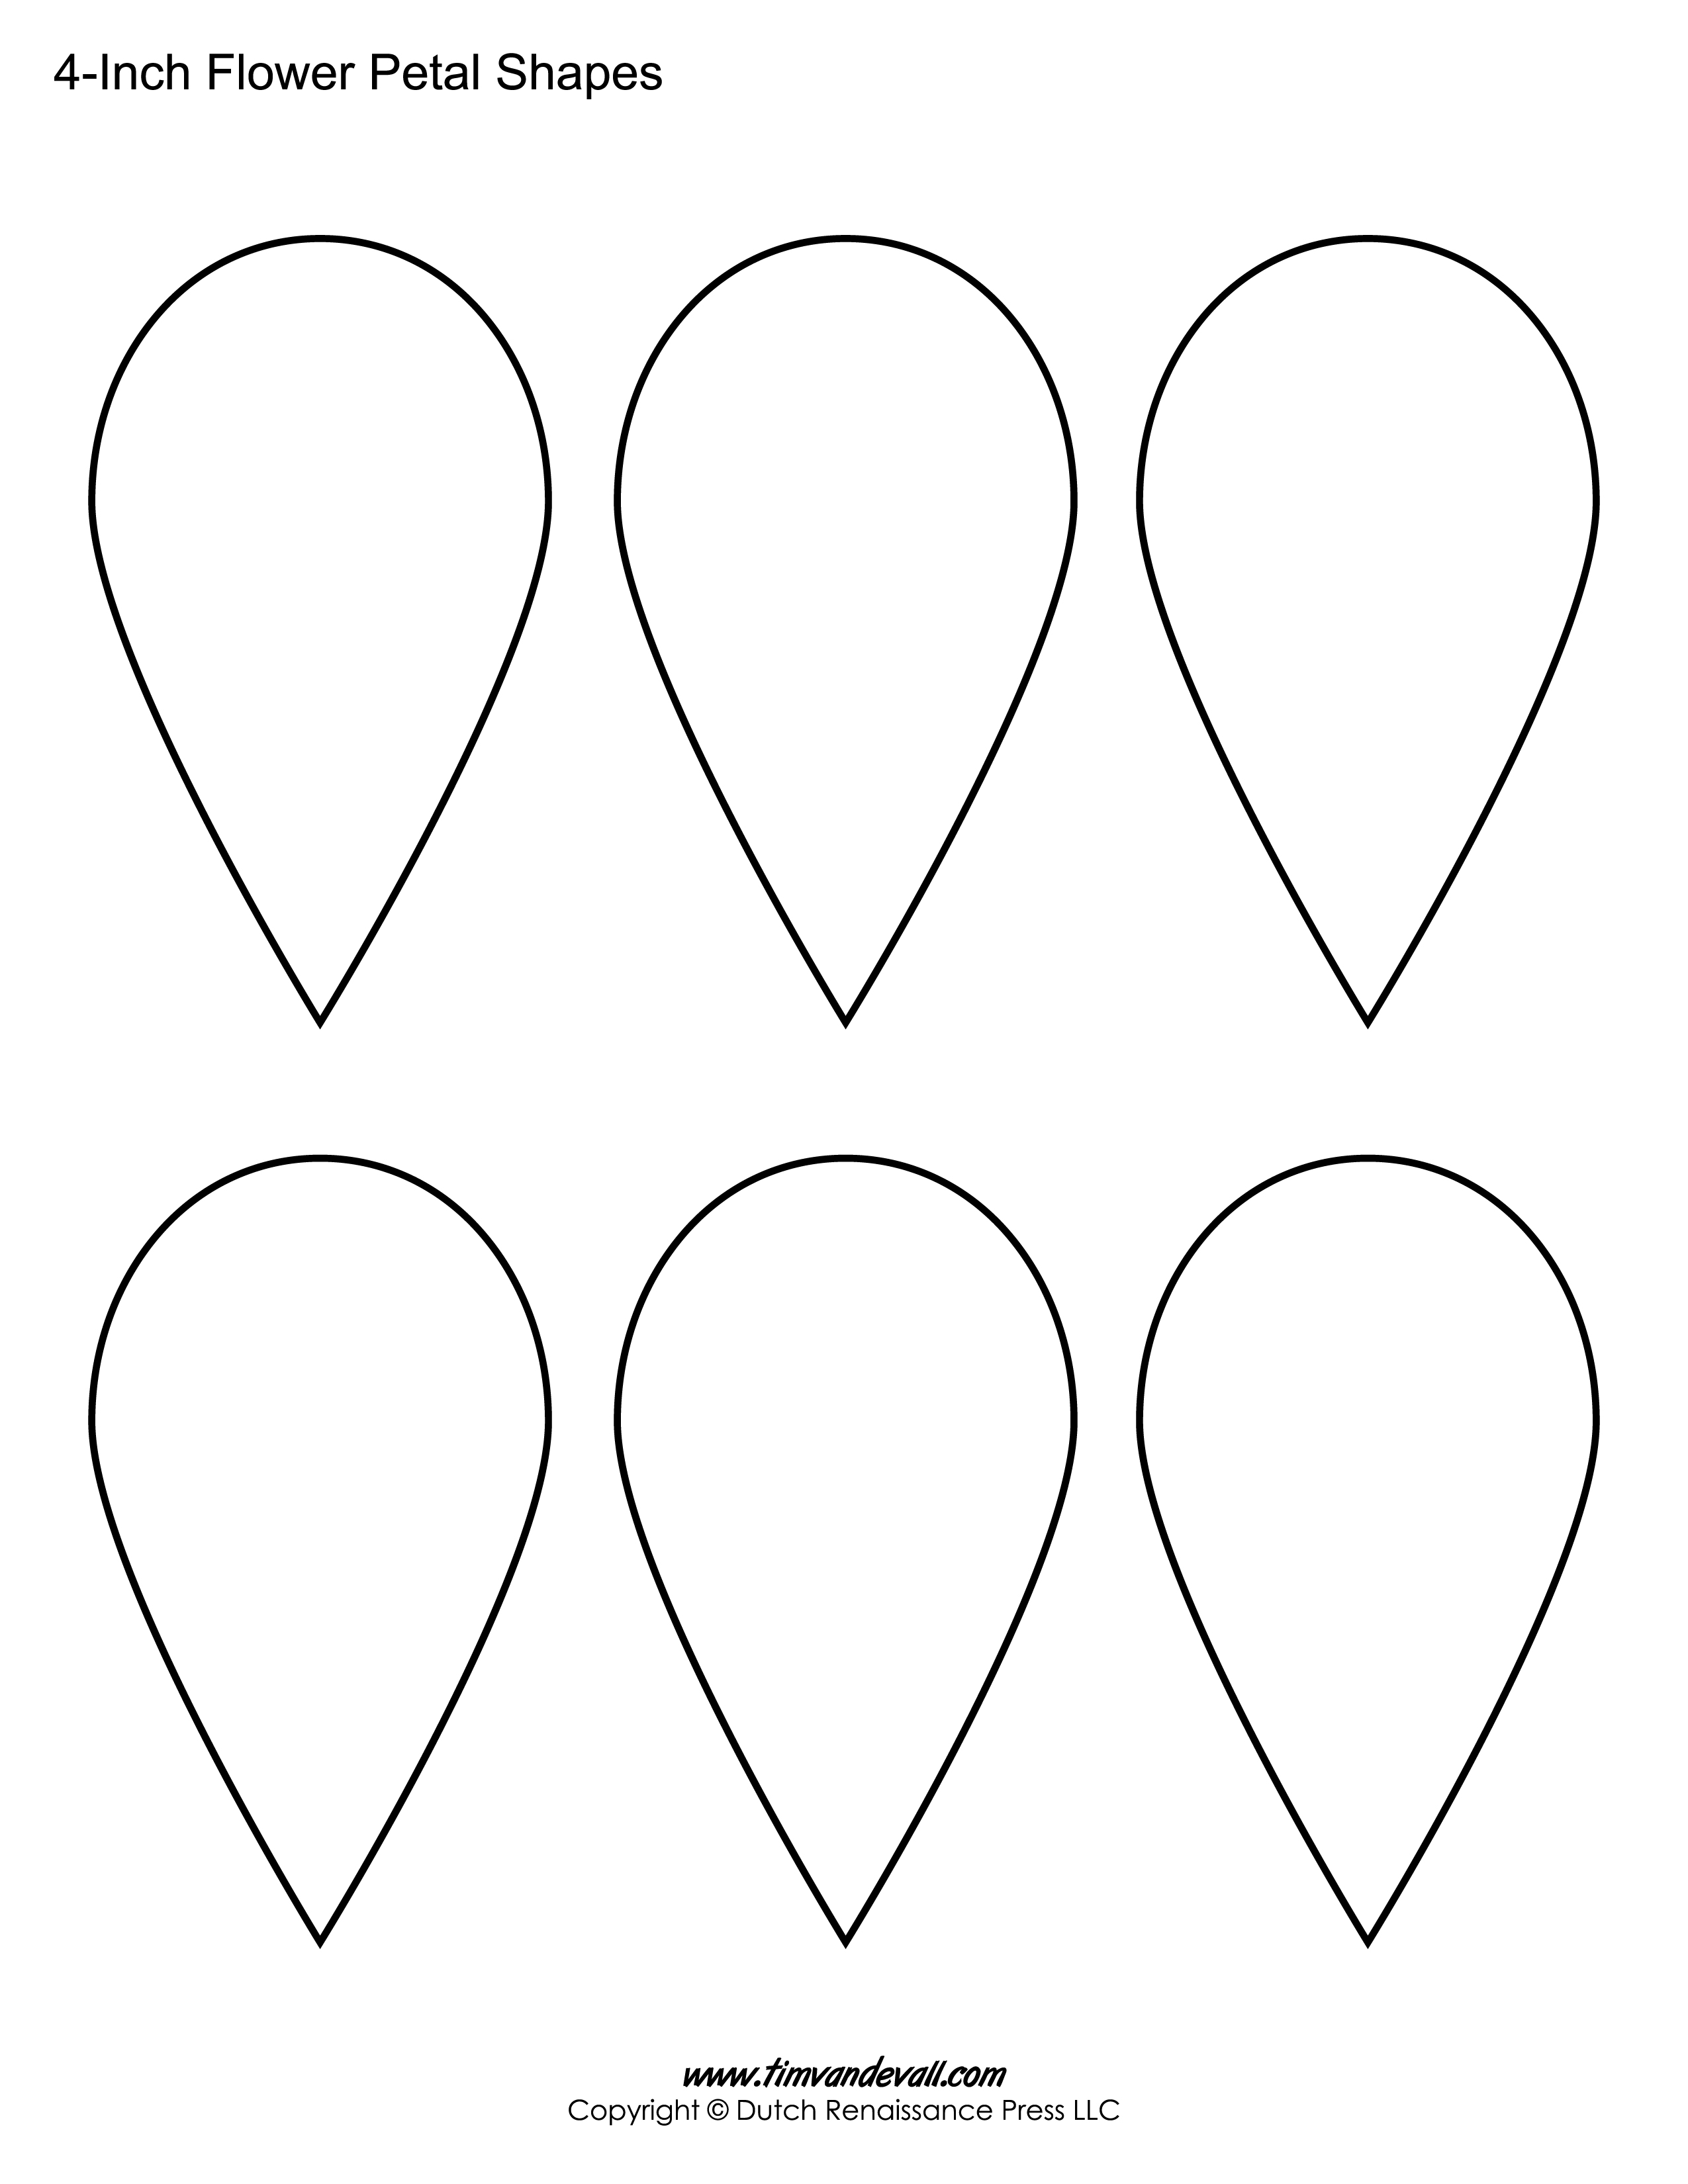 Printable Flower Petal Templates For Making Paper Flowers